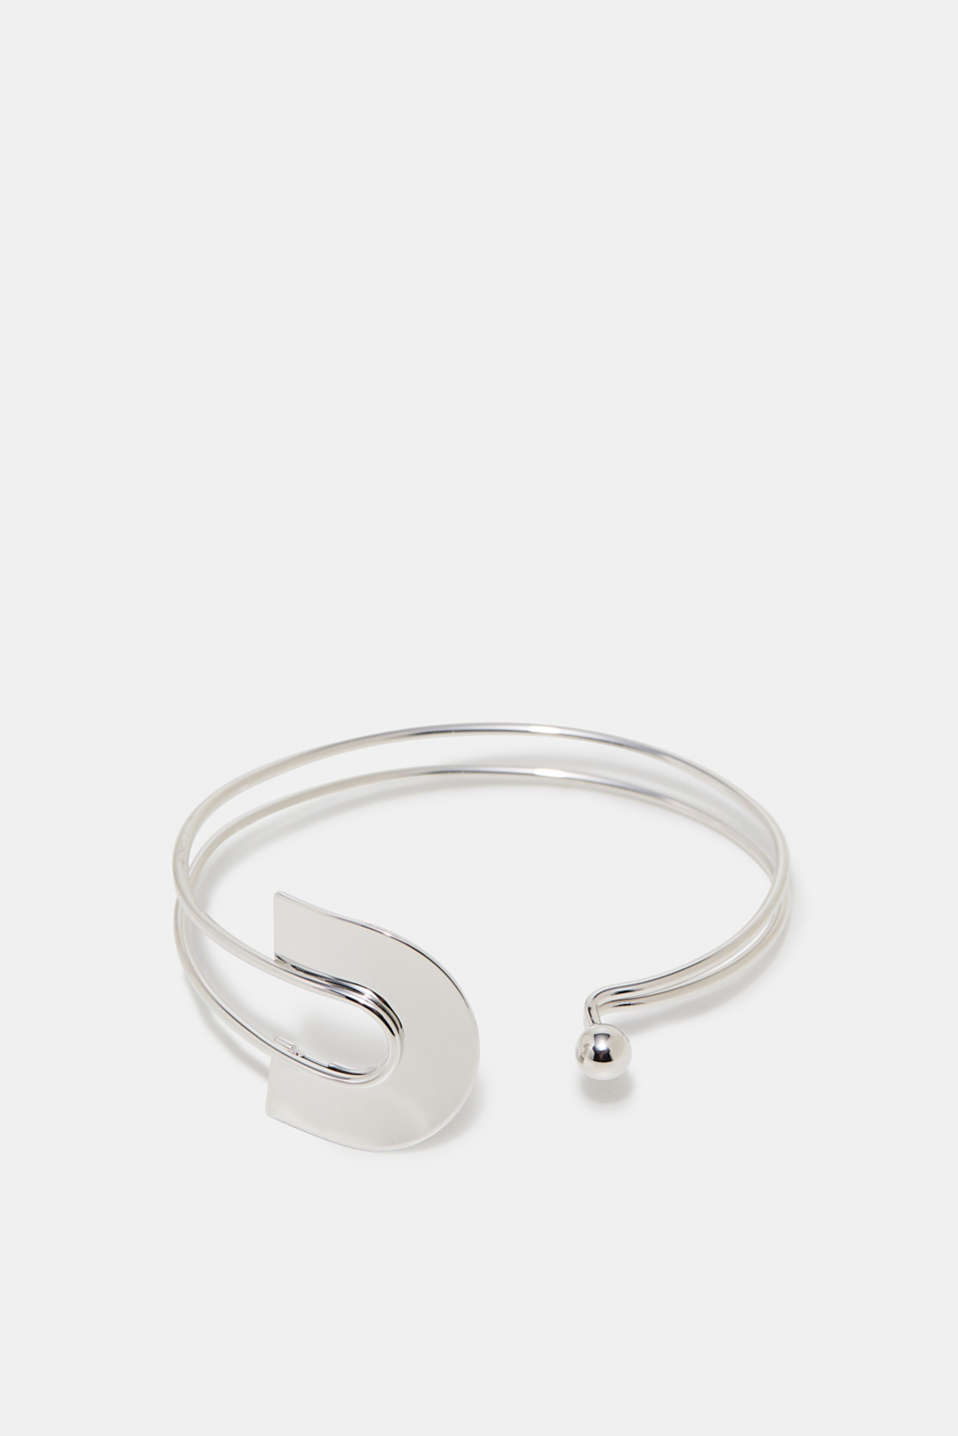 This open bracelet features a large clasp making it a distinctive, timeless accessory.